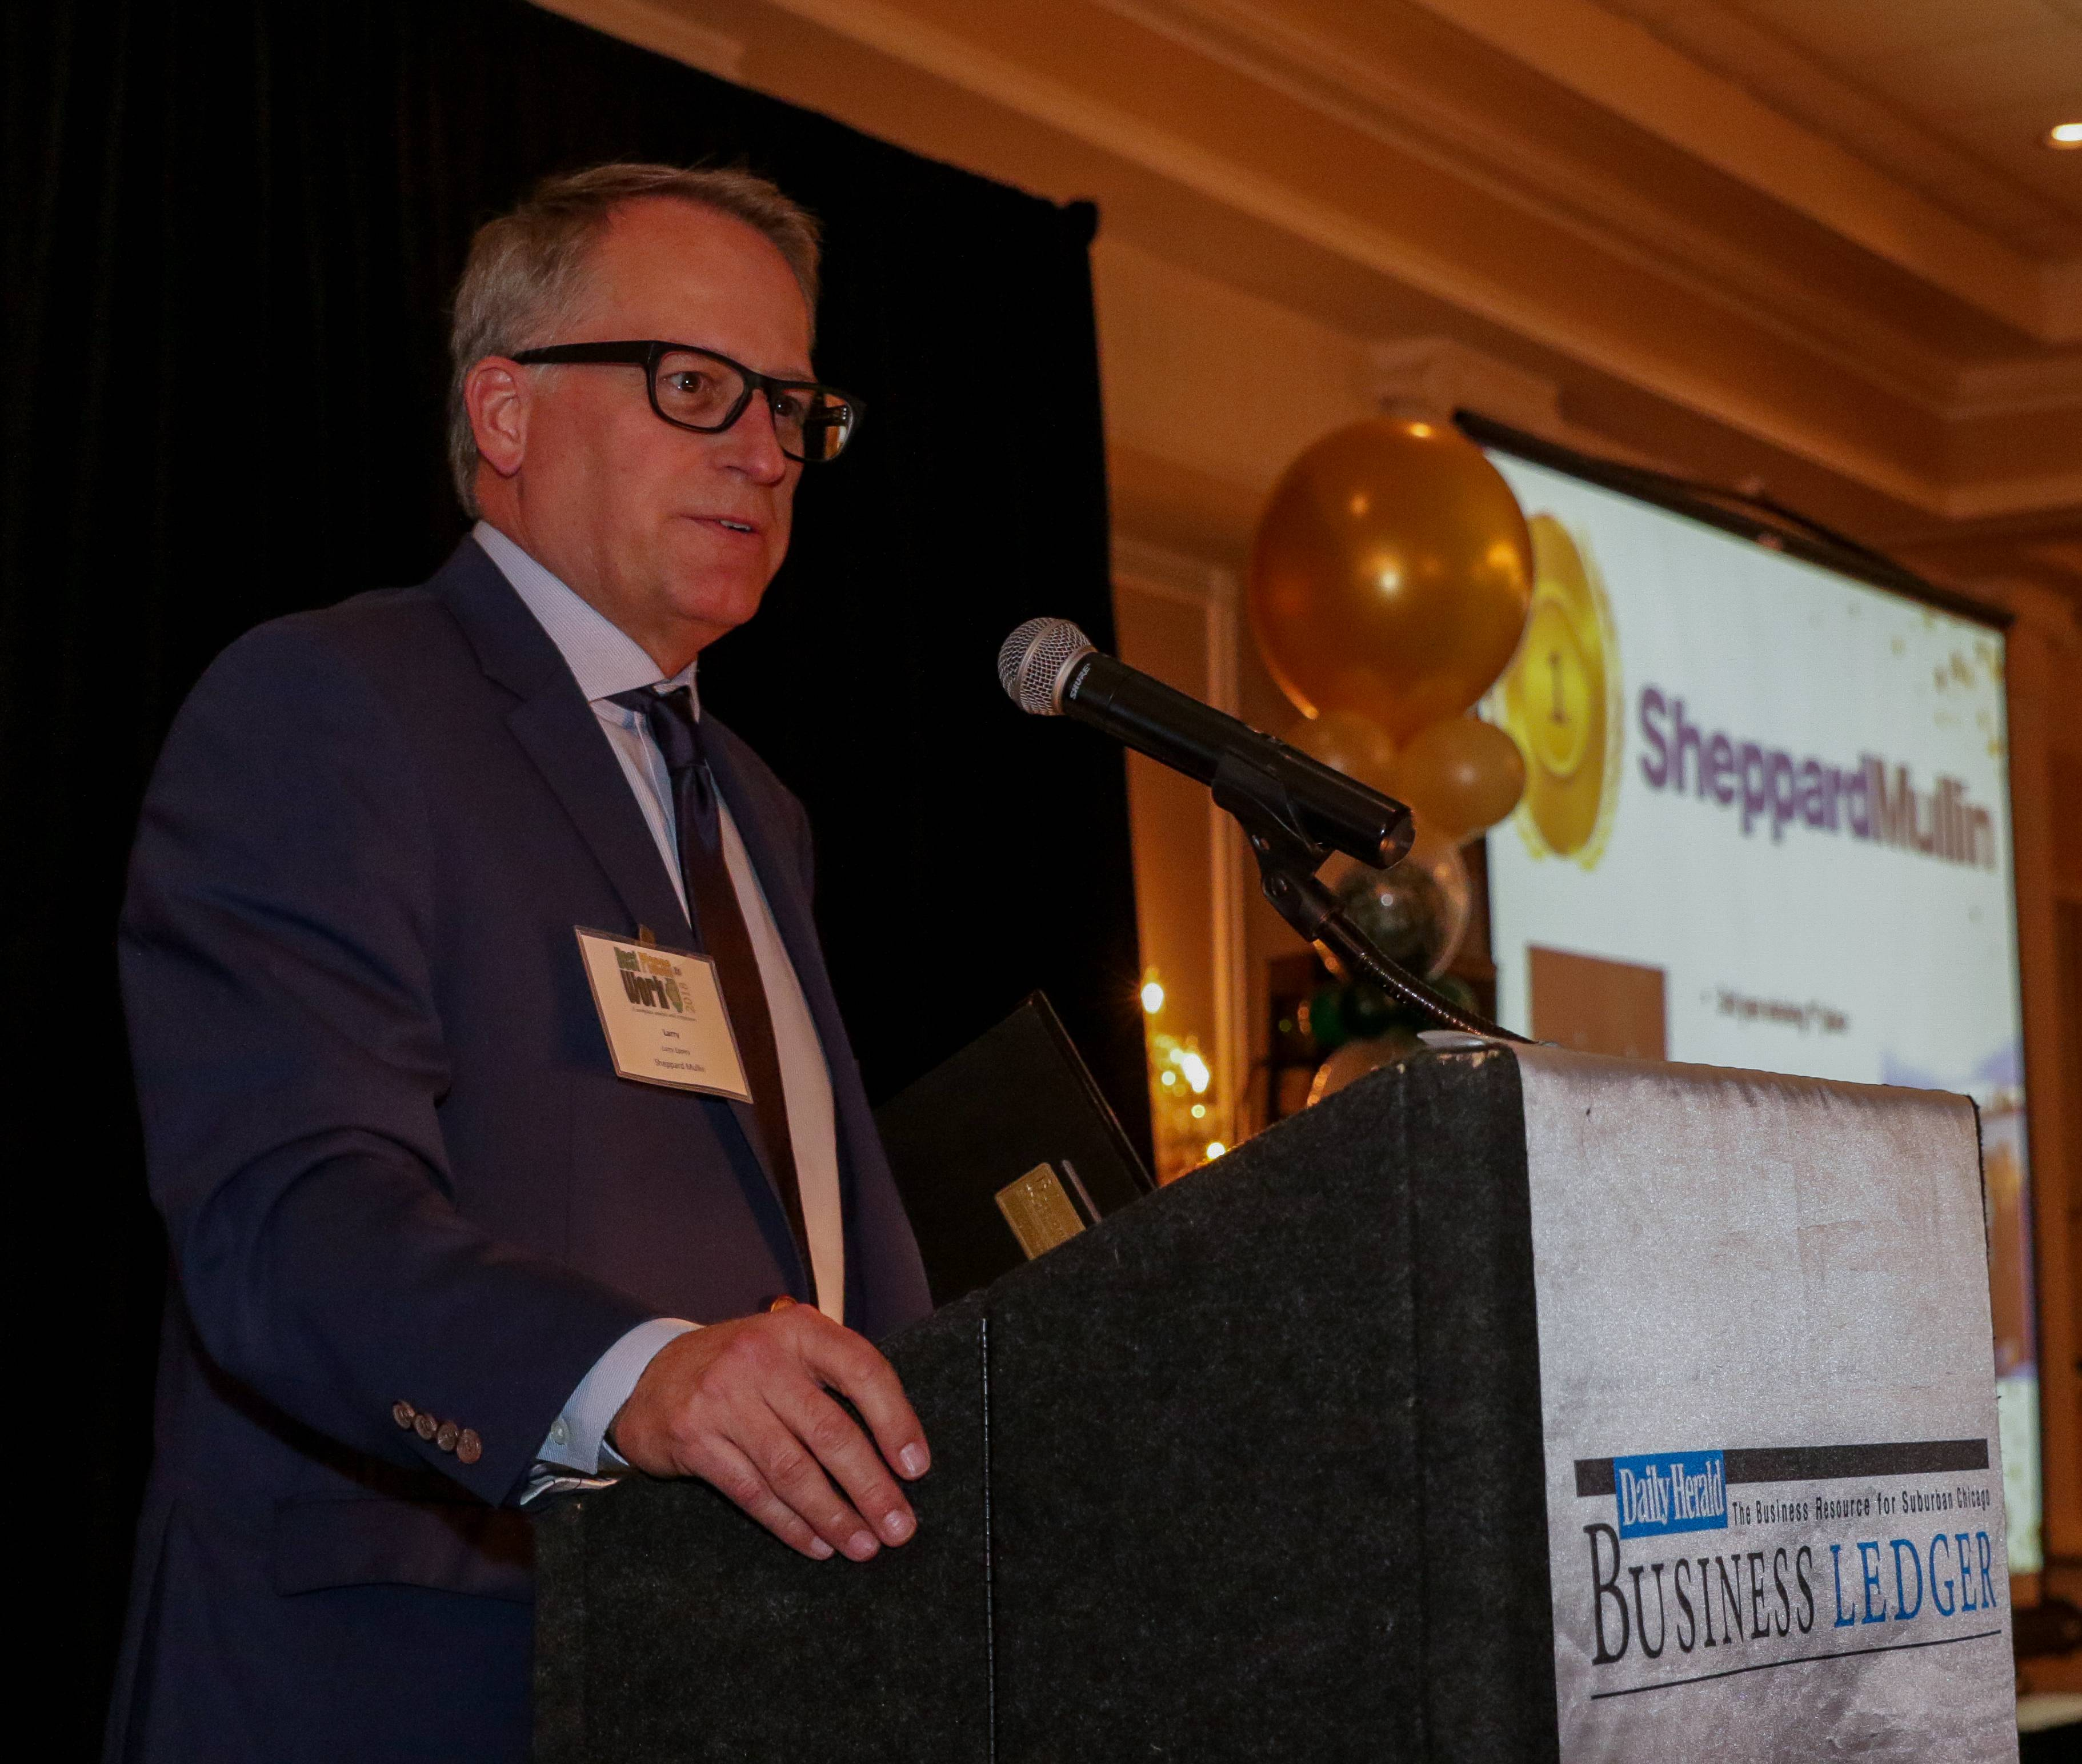 Bev Horne/bhorne@dailyherald.comLarry Eppley, Chicago Office Managing Partner with Sheppard Mullin, accepts first place for a large business at the Business Ledger Best Places to Work Awards in Glen Ellyn on Thursday.